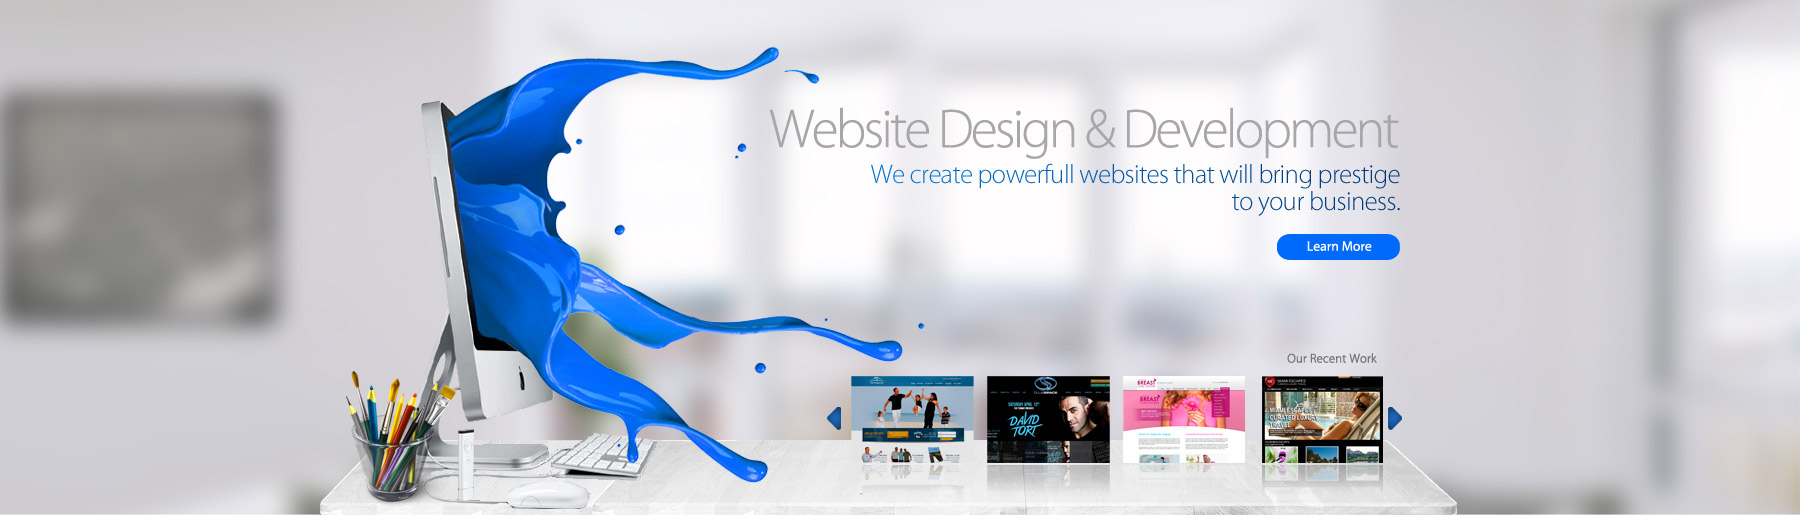 Web Design Lanzarote, Mobile Design Ecommerce, Responsive Design, website design ecommerce lanzarote